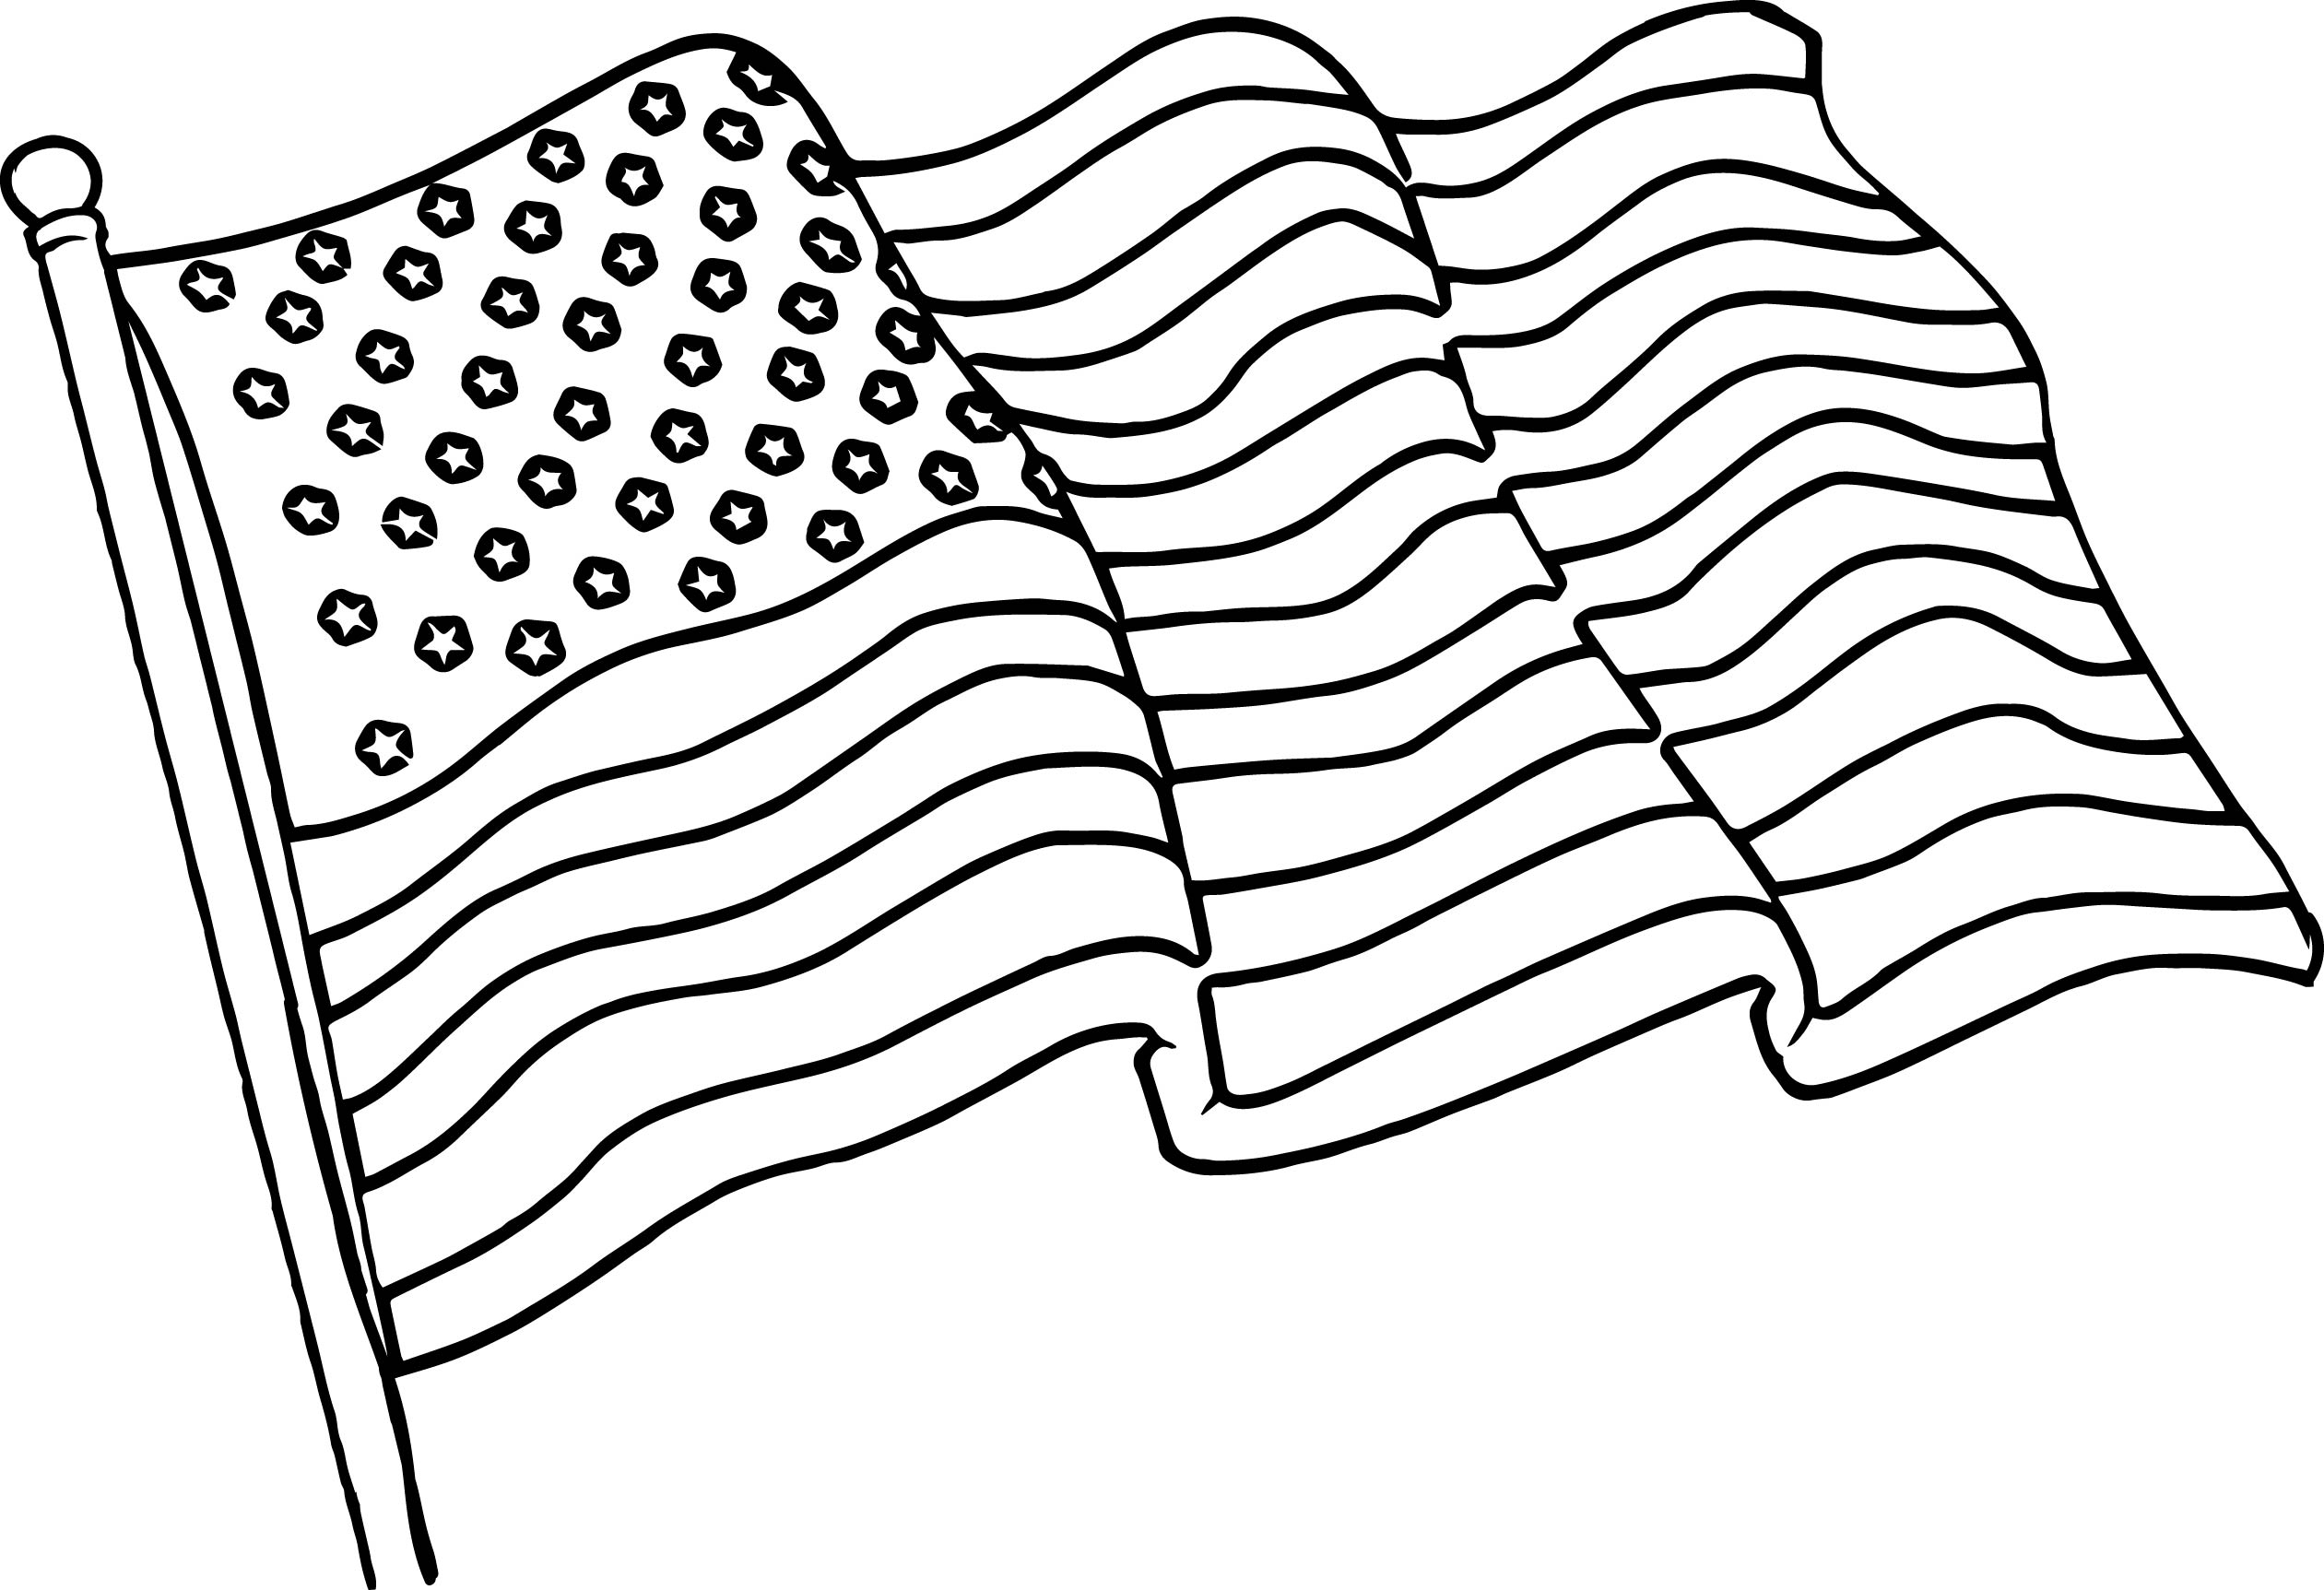 american flag coloring american flag coloring page for the love of the country flag coloring american